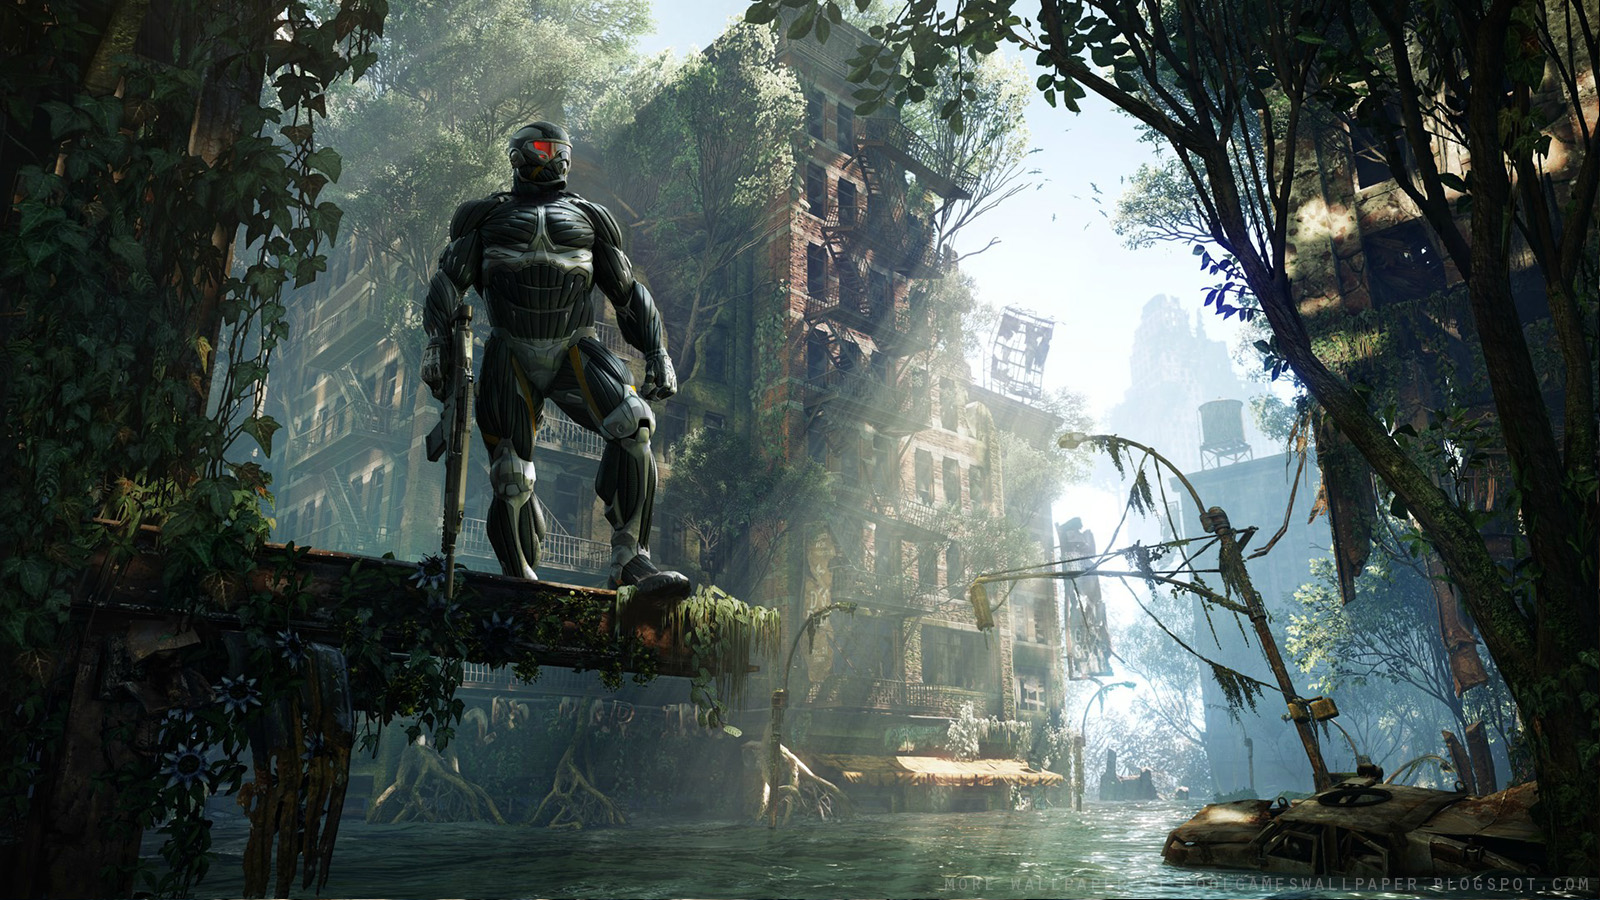 crysis 4 wallpaper hd - photo #40